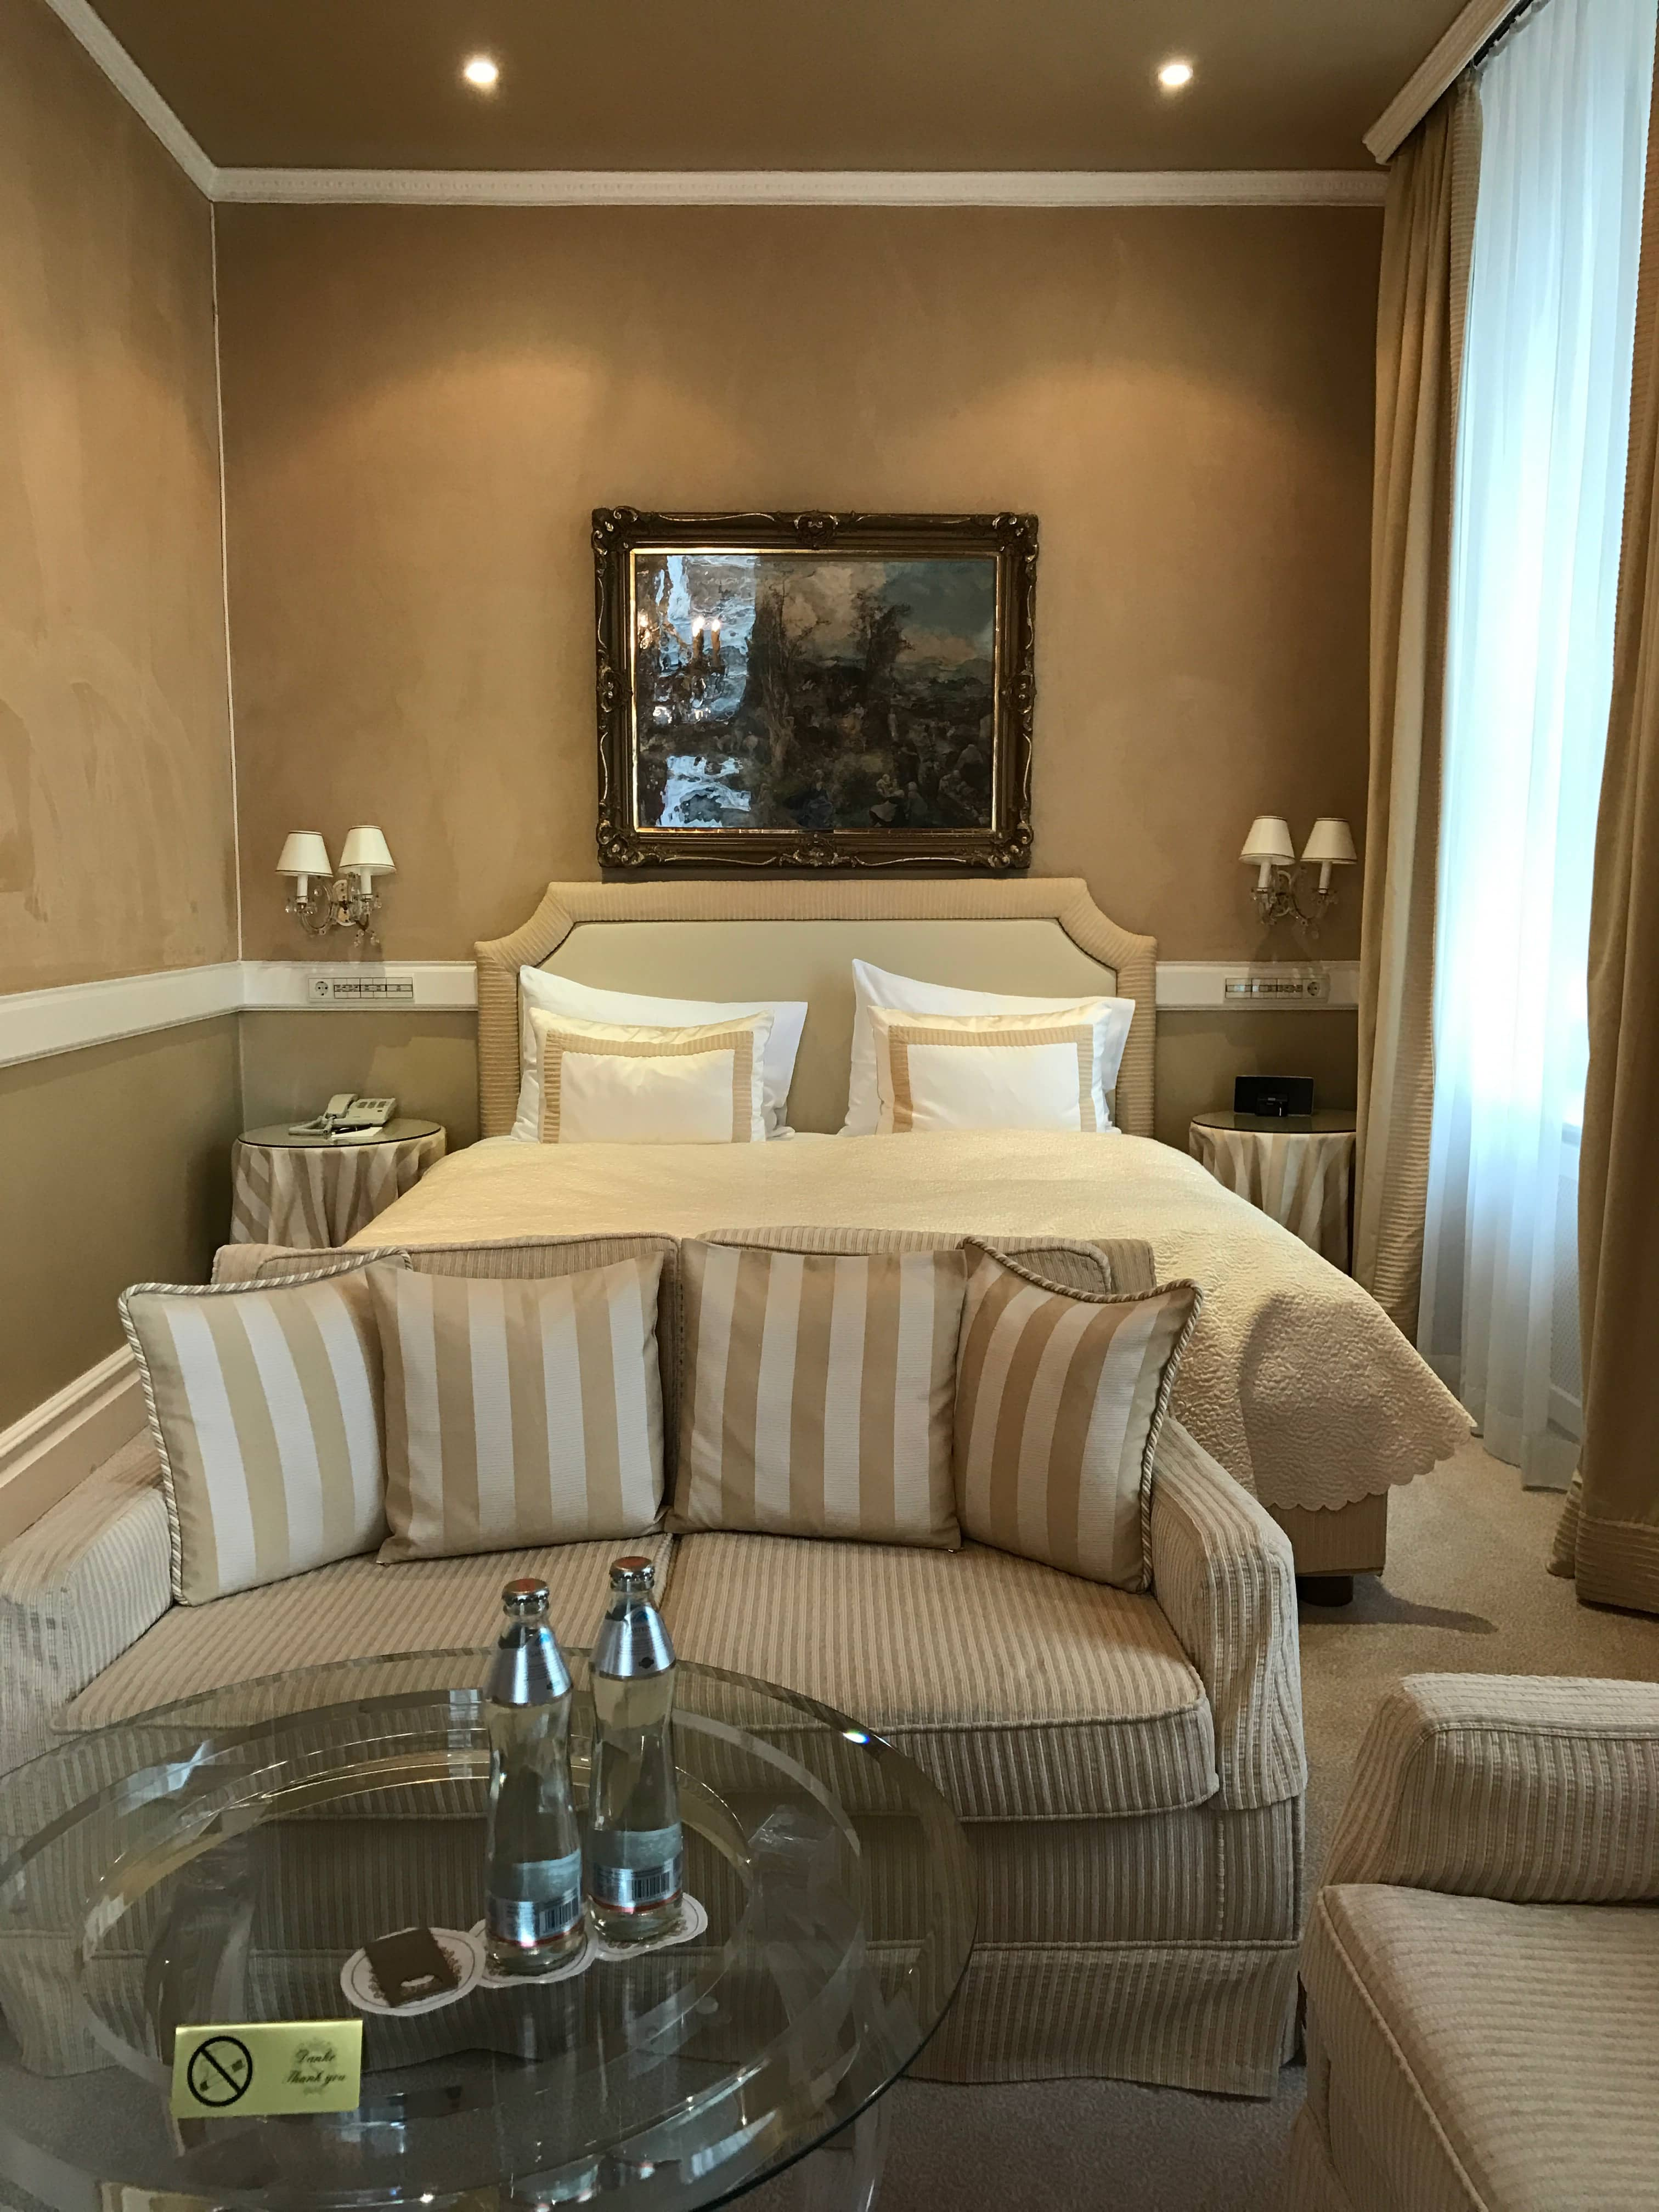 A stay at Hotel Sacher in Vienna 1